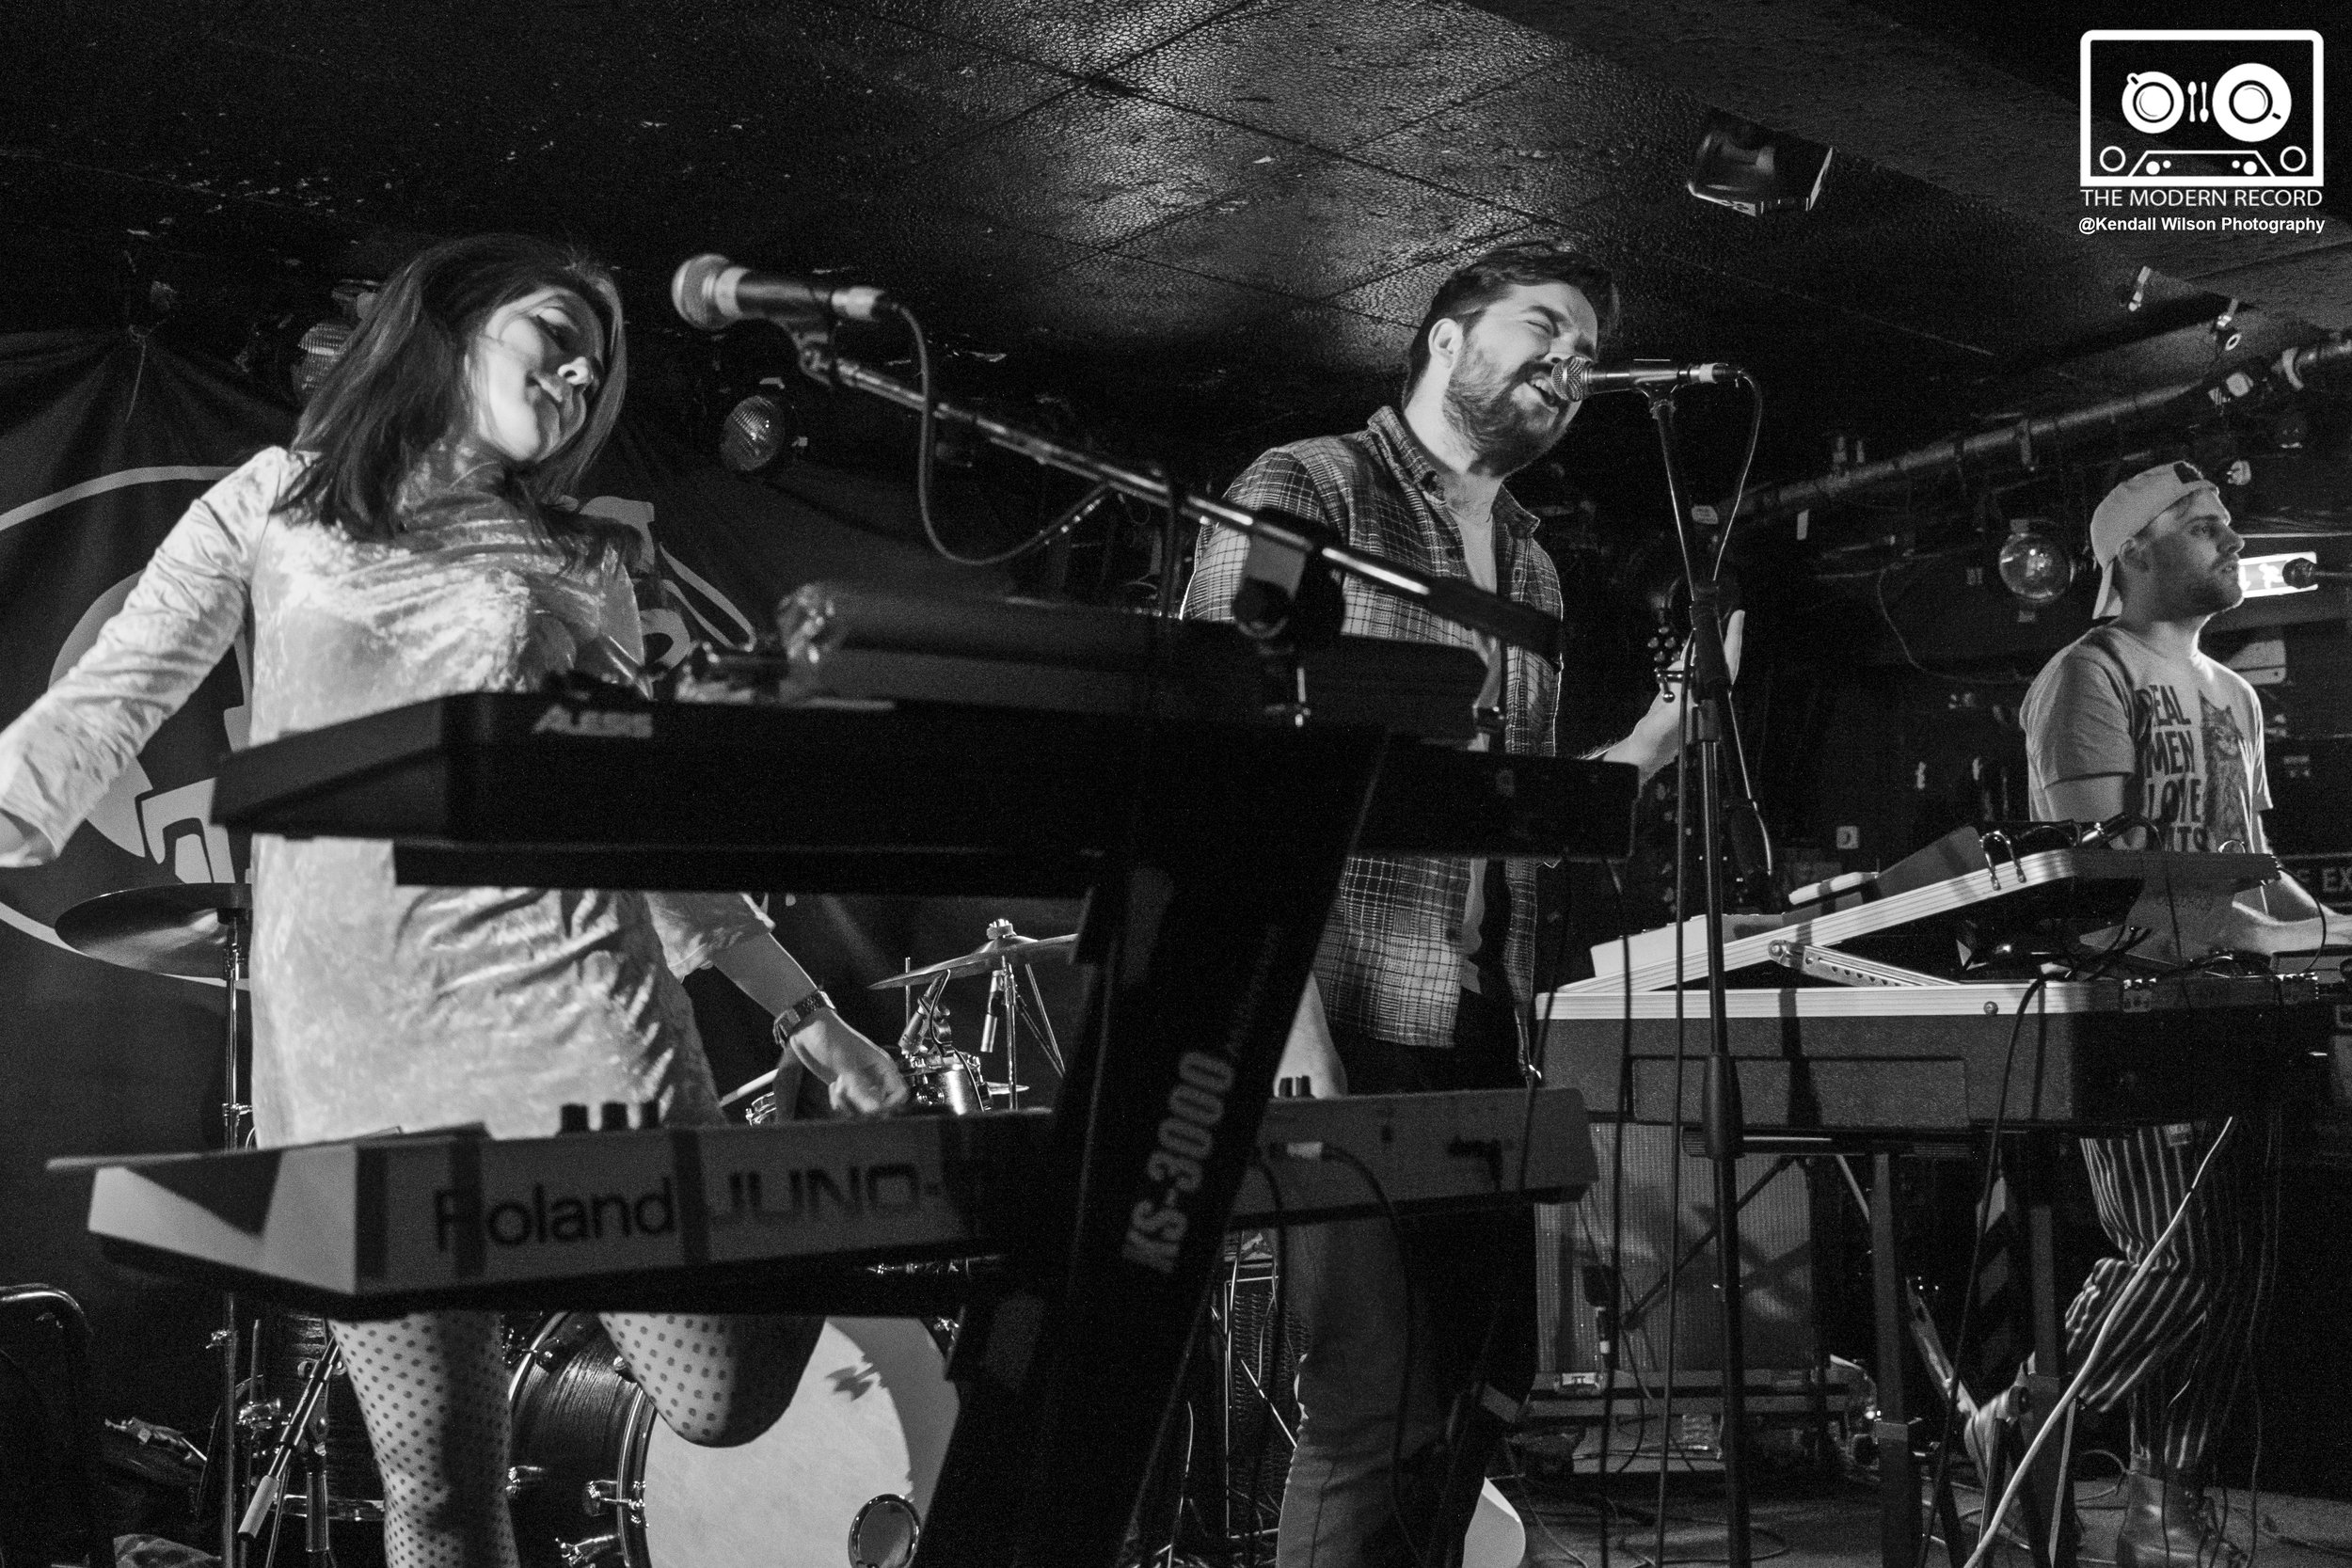 BOOHOOHOO PERFORMING AT GLASGOW'S KING TUT'S NEW YEAR'S REVOLUTION - 12.01.2017  PICTURE BY: KENDALL WILSON PHOTOGRAPHY